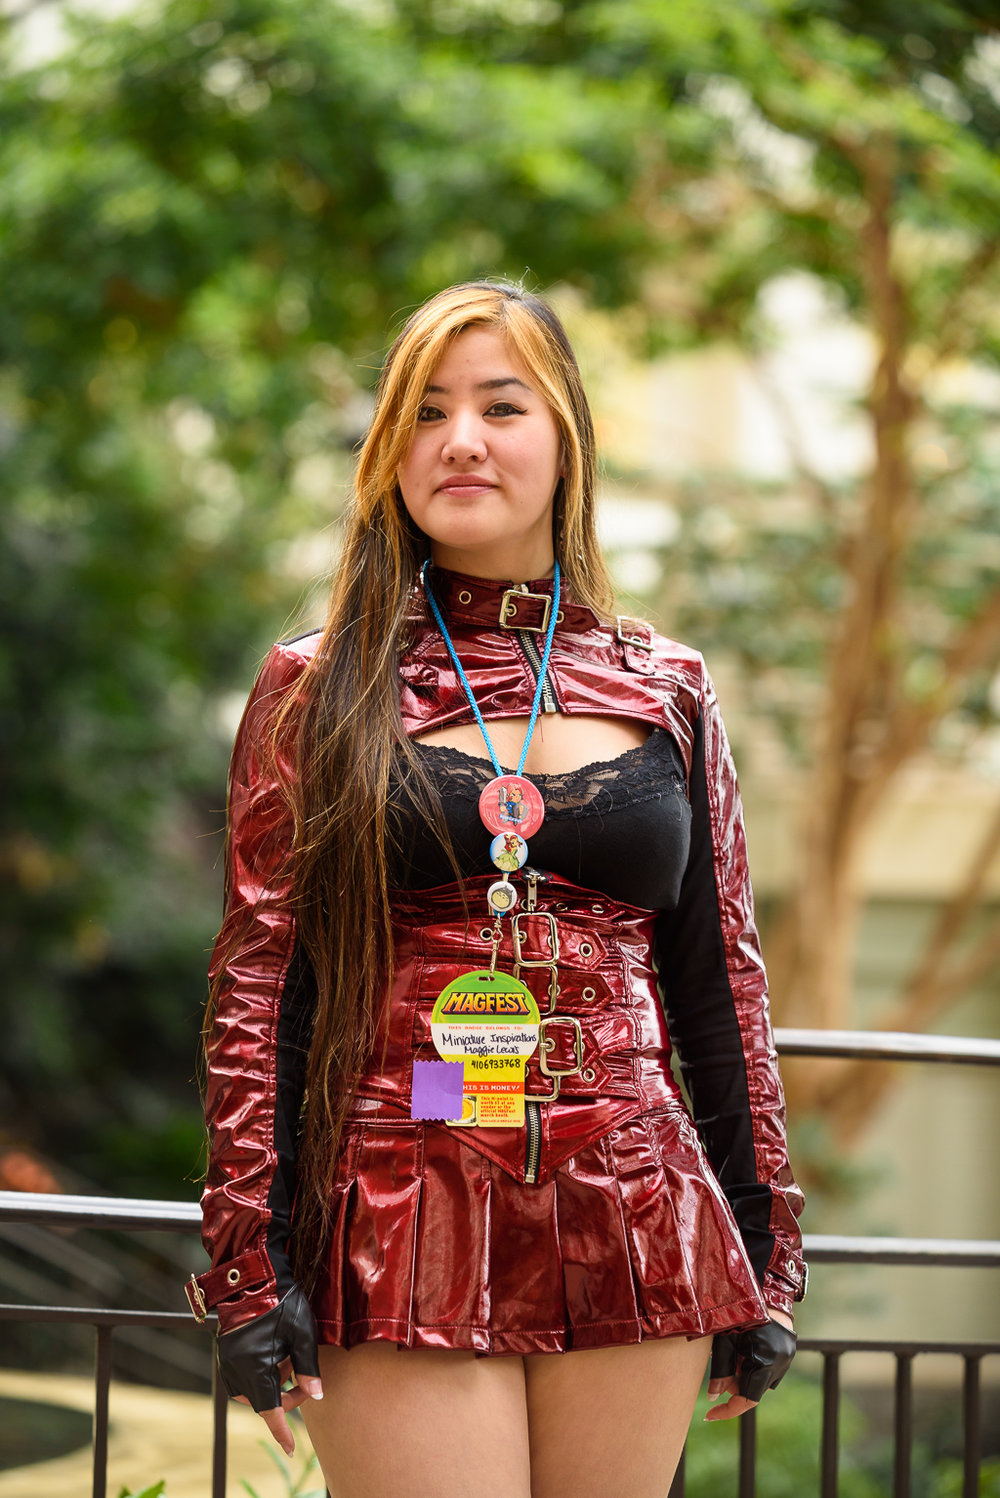 Magfest-Cosplay-7.jpg